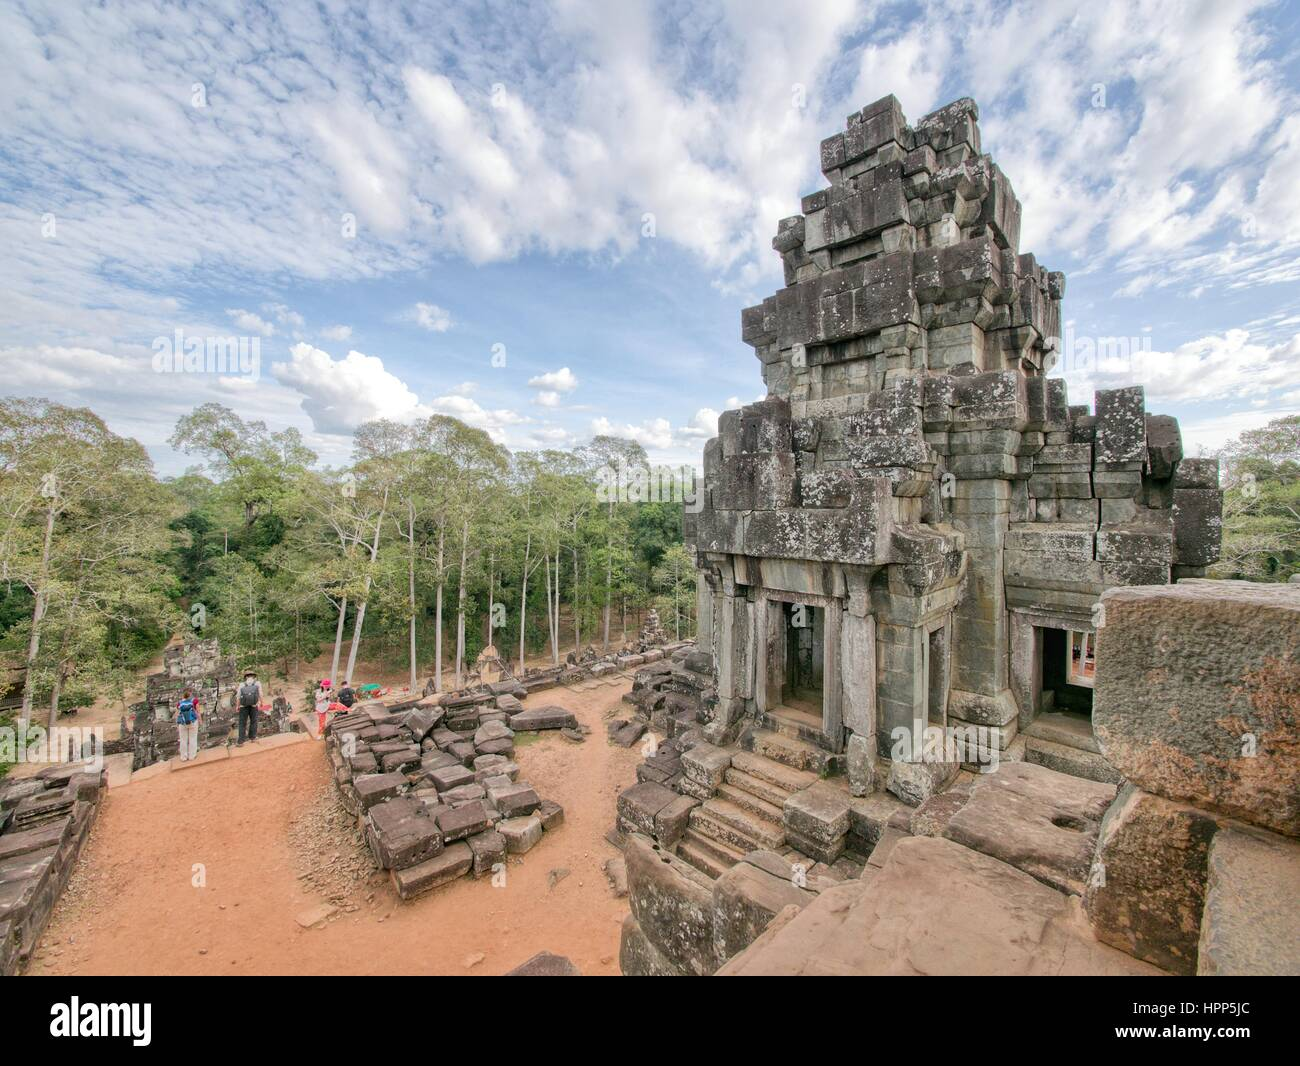 Temple ruins in Angkor Wat Siem Reap with blue sky clouds no people - Stock Image